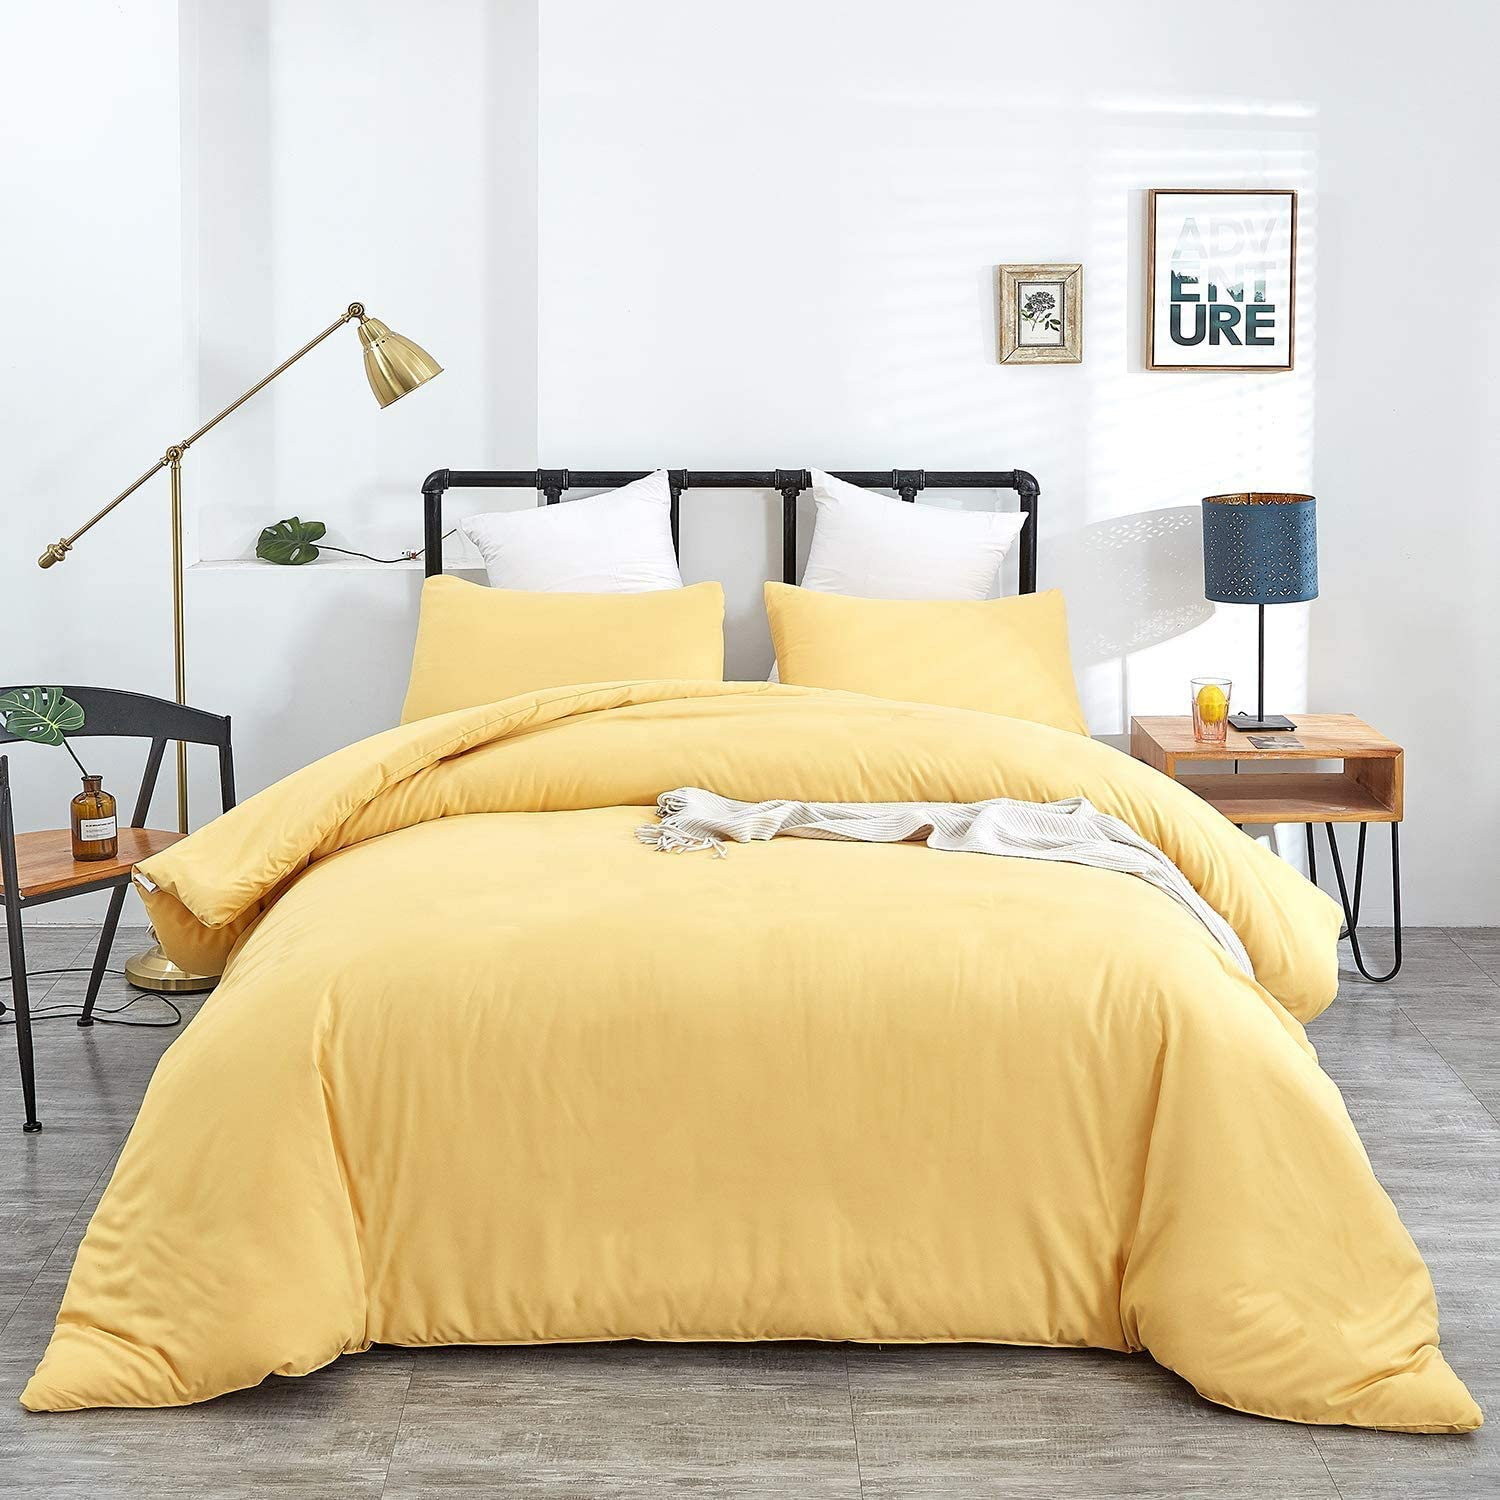 Amazon.com: Jumeey Yellow Comforter Sets King Light Yellow Bedding